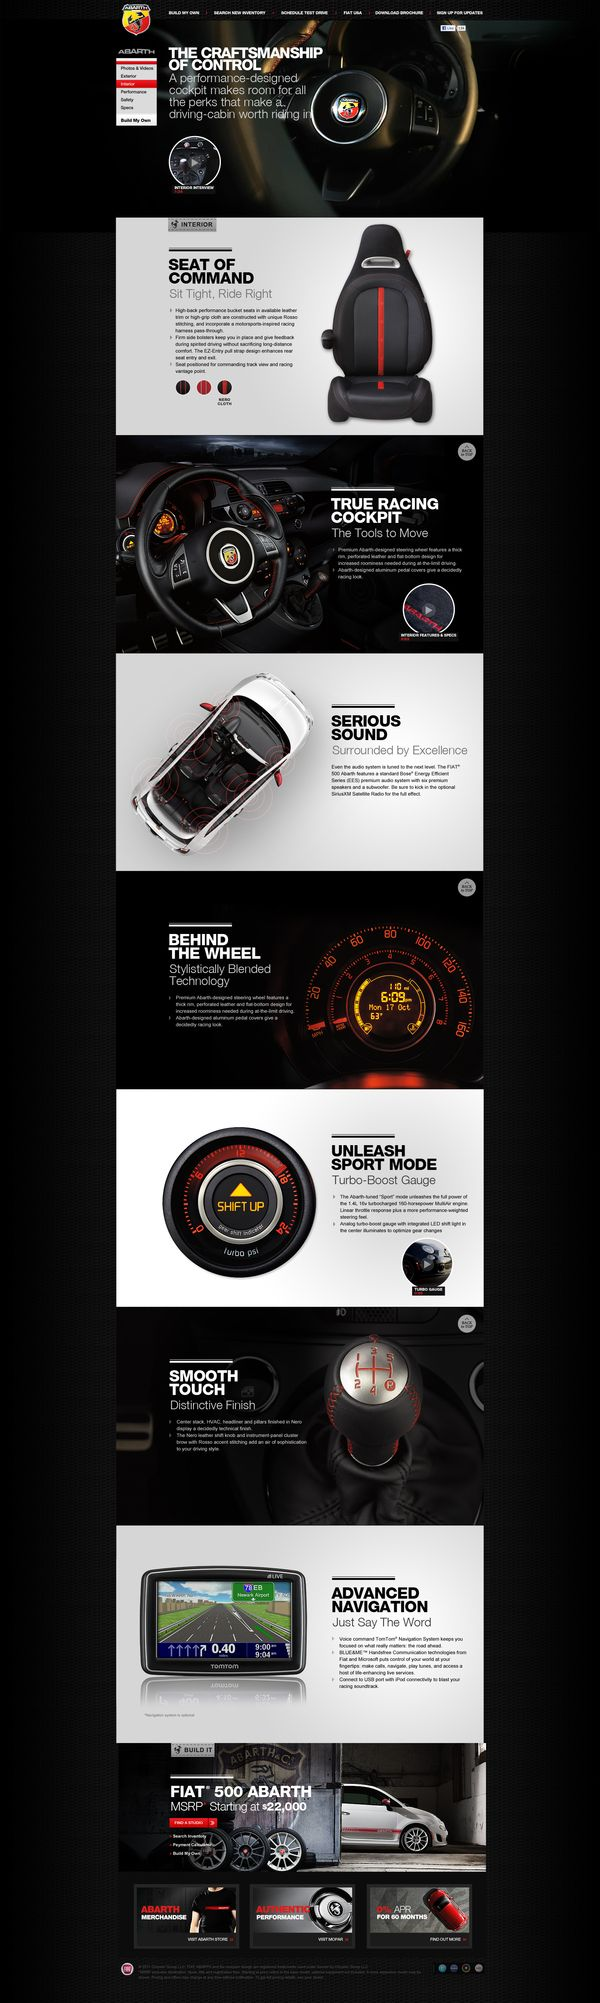 Cool Automotive Web Design on the Internet. Fiat. #automotive #webdesign #webdevelopment #website